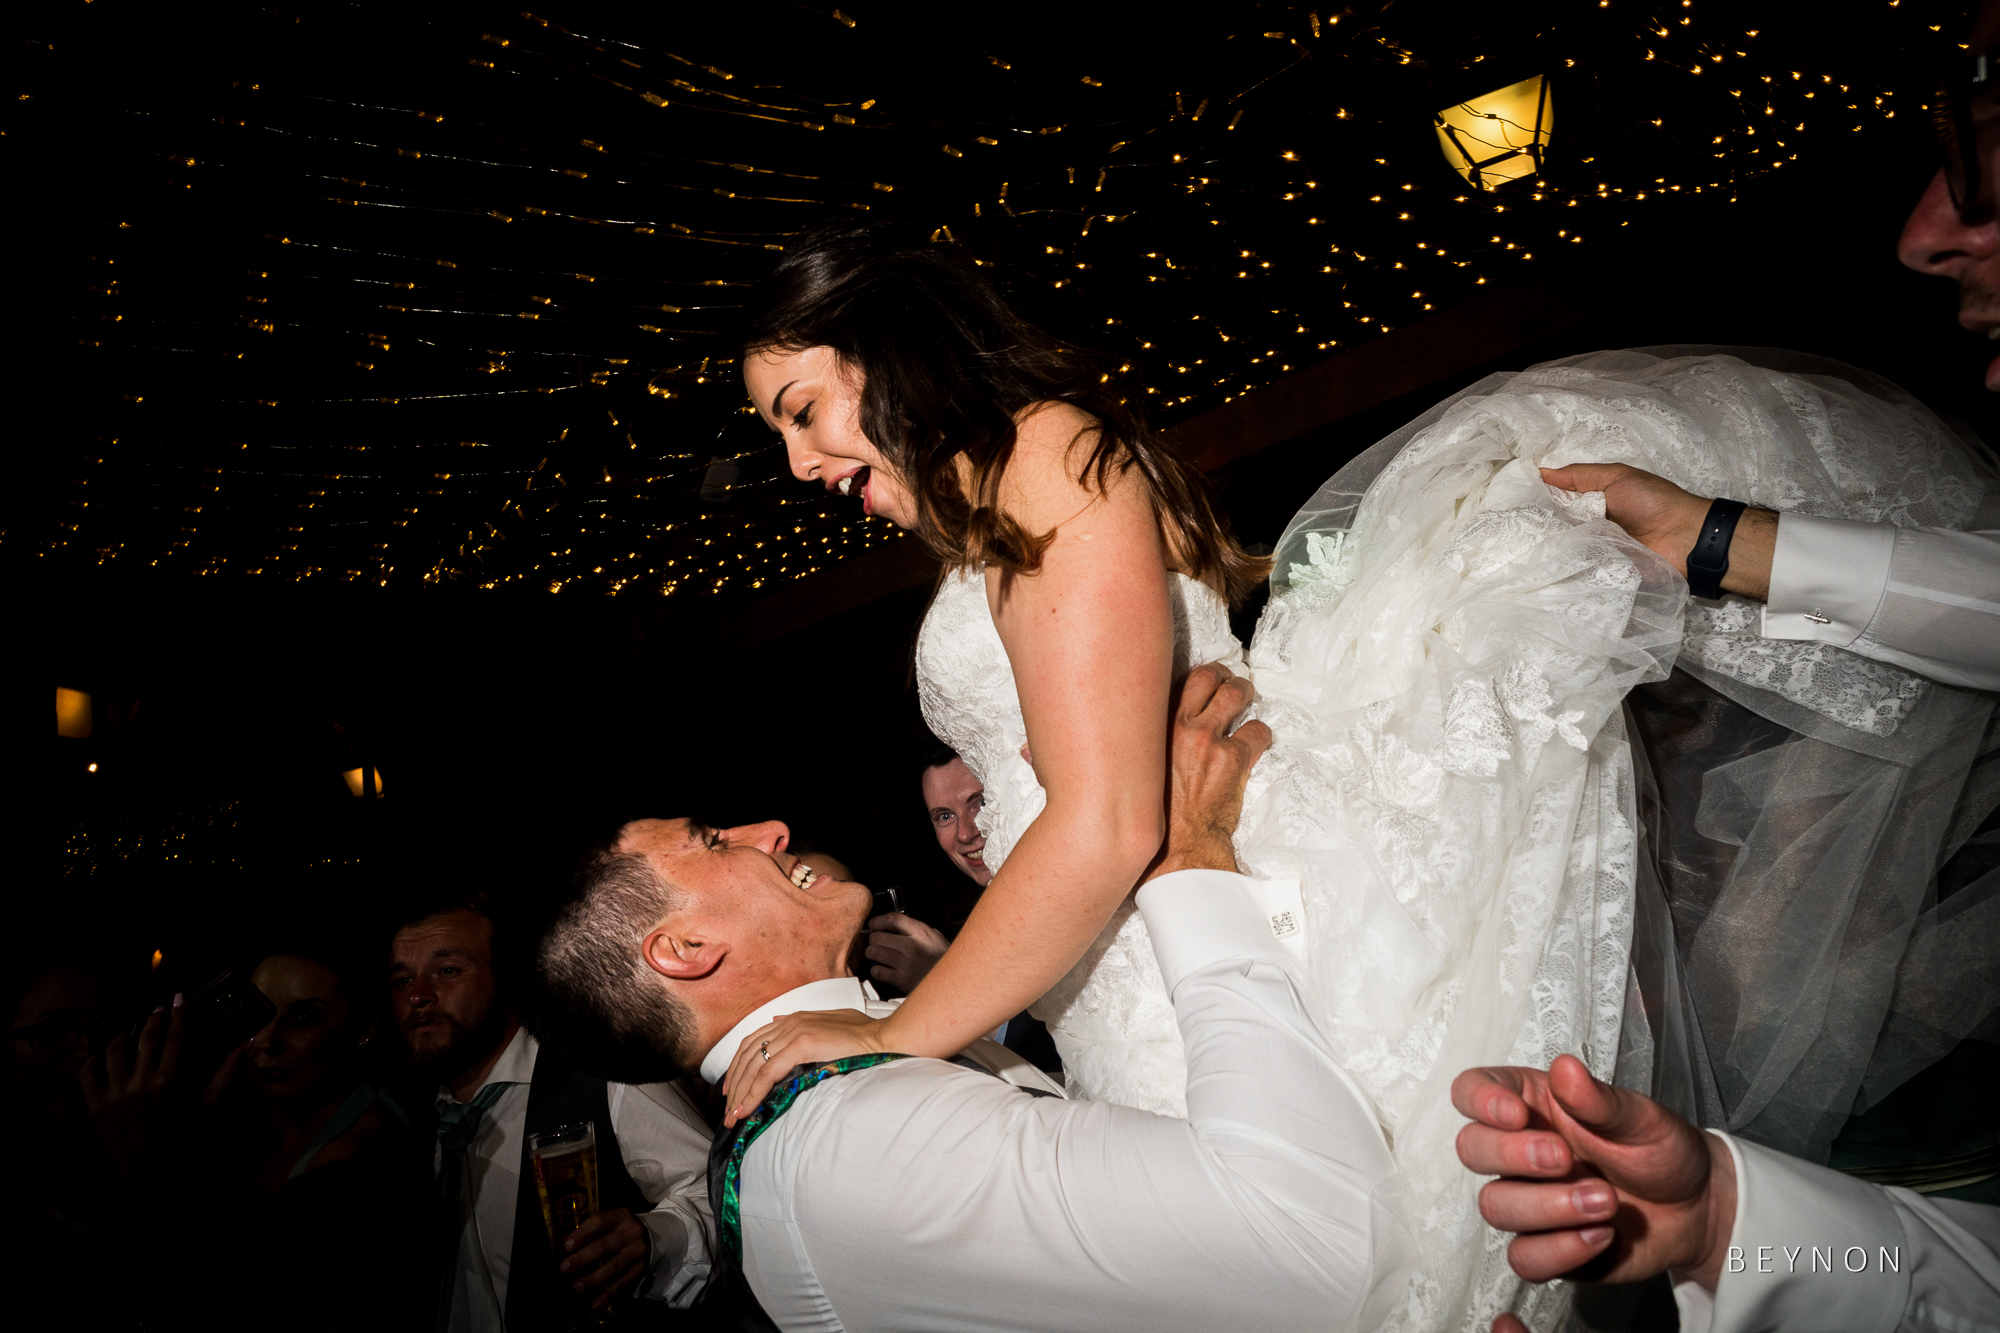 Groom lifts up bride